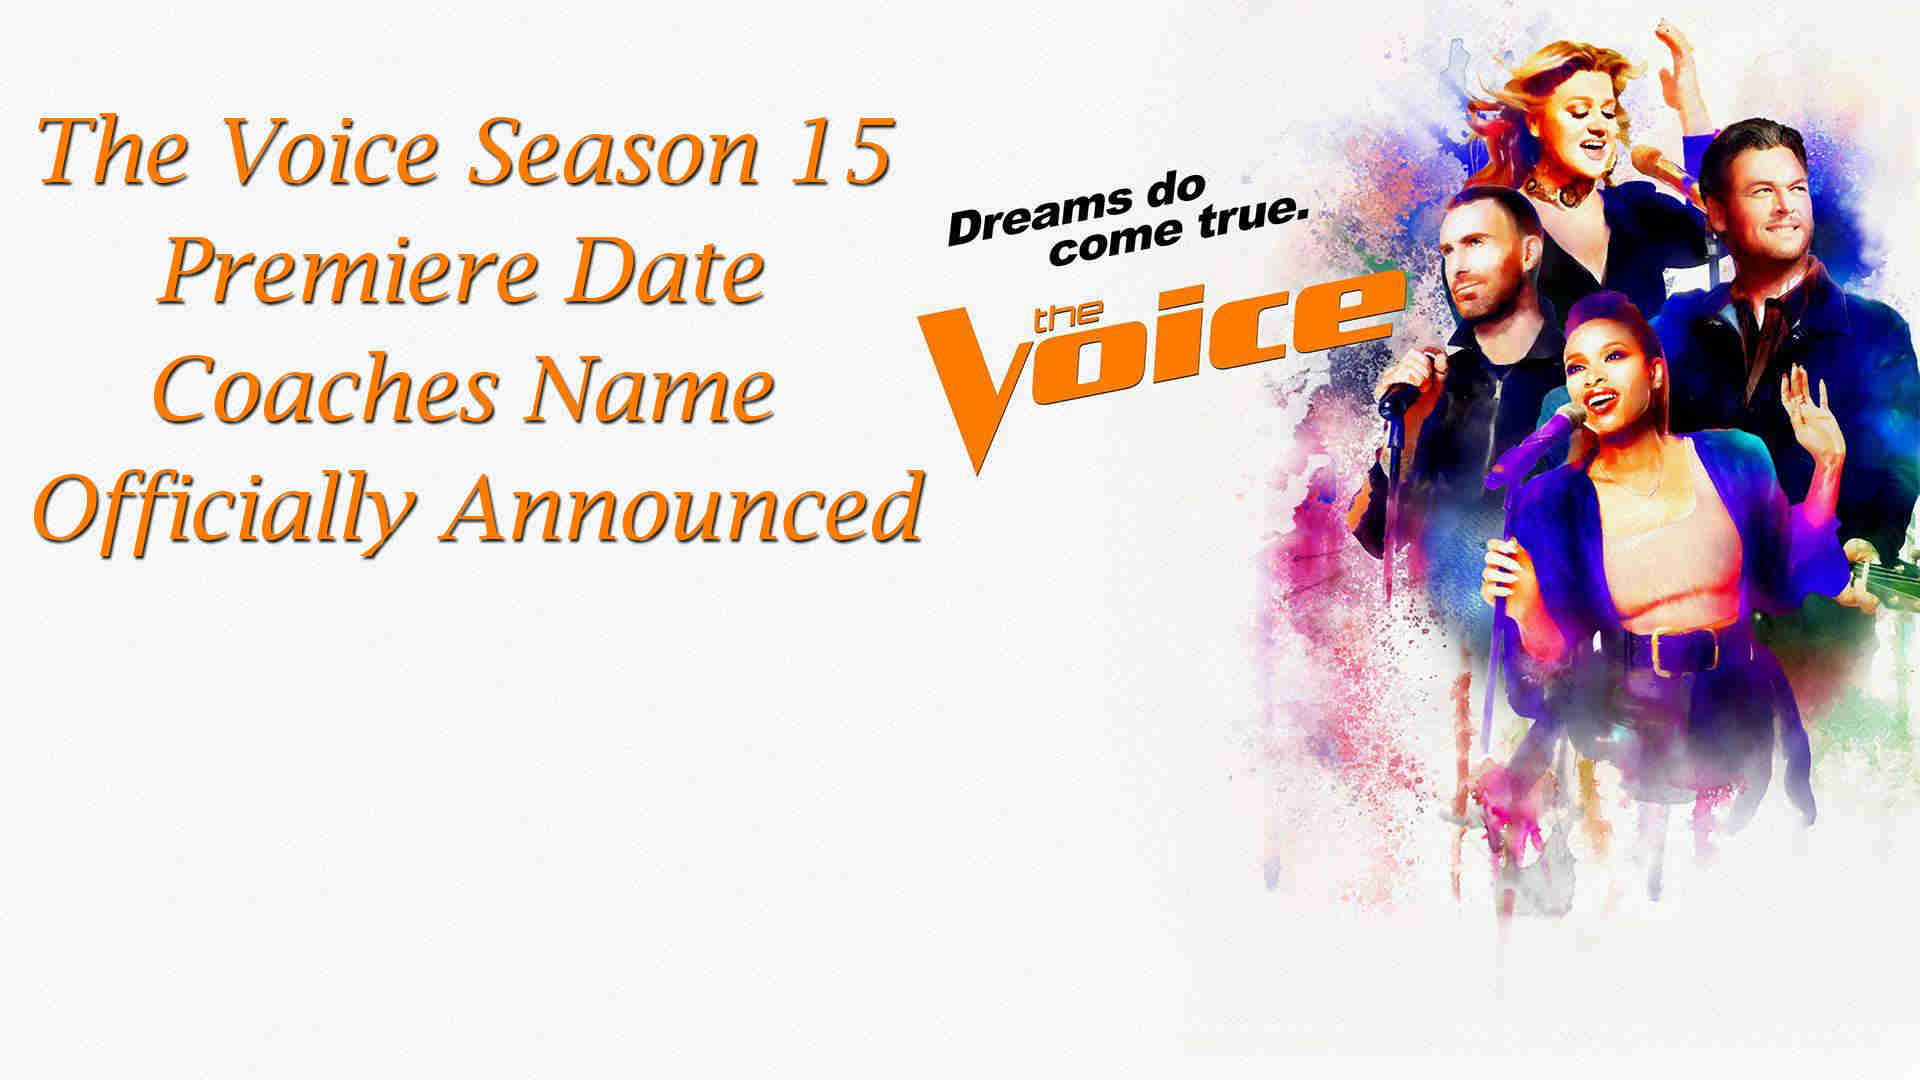 The Voice Season 15 Premiere Date and the Voice Season 15 Coaches Name Officially Announced